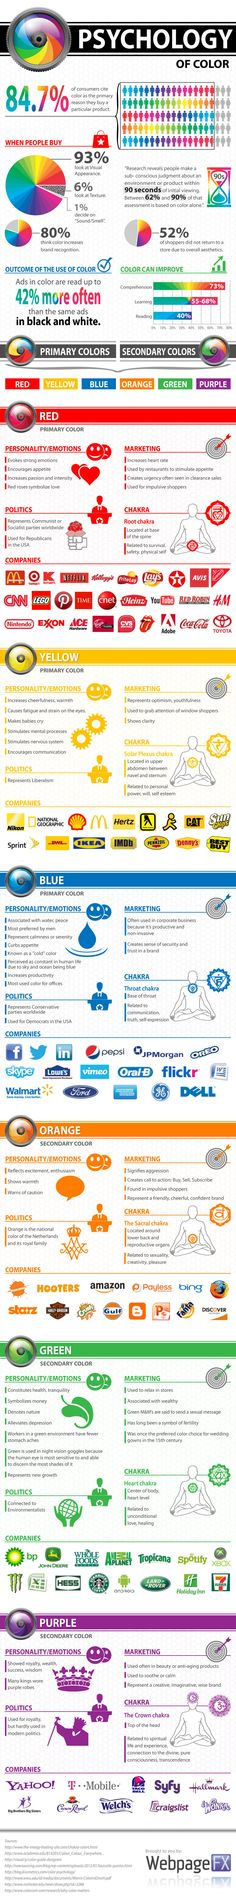 The Psychology of Colour in Advertising